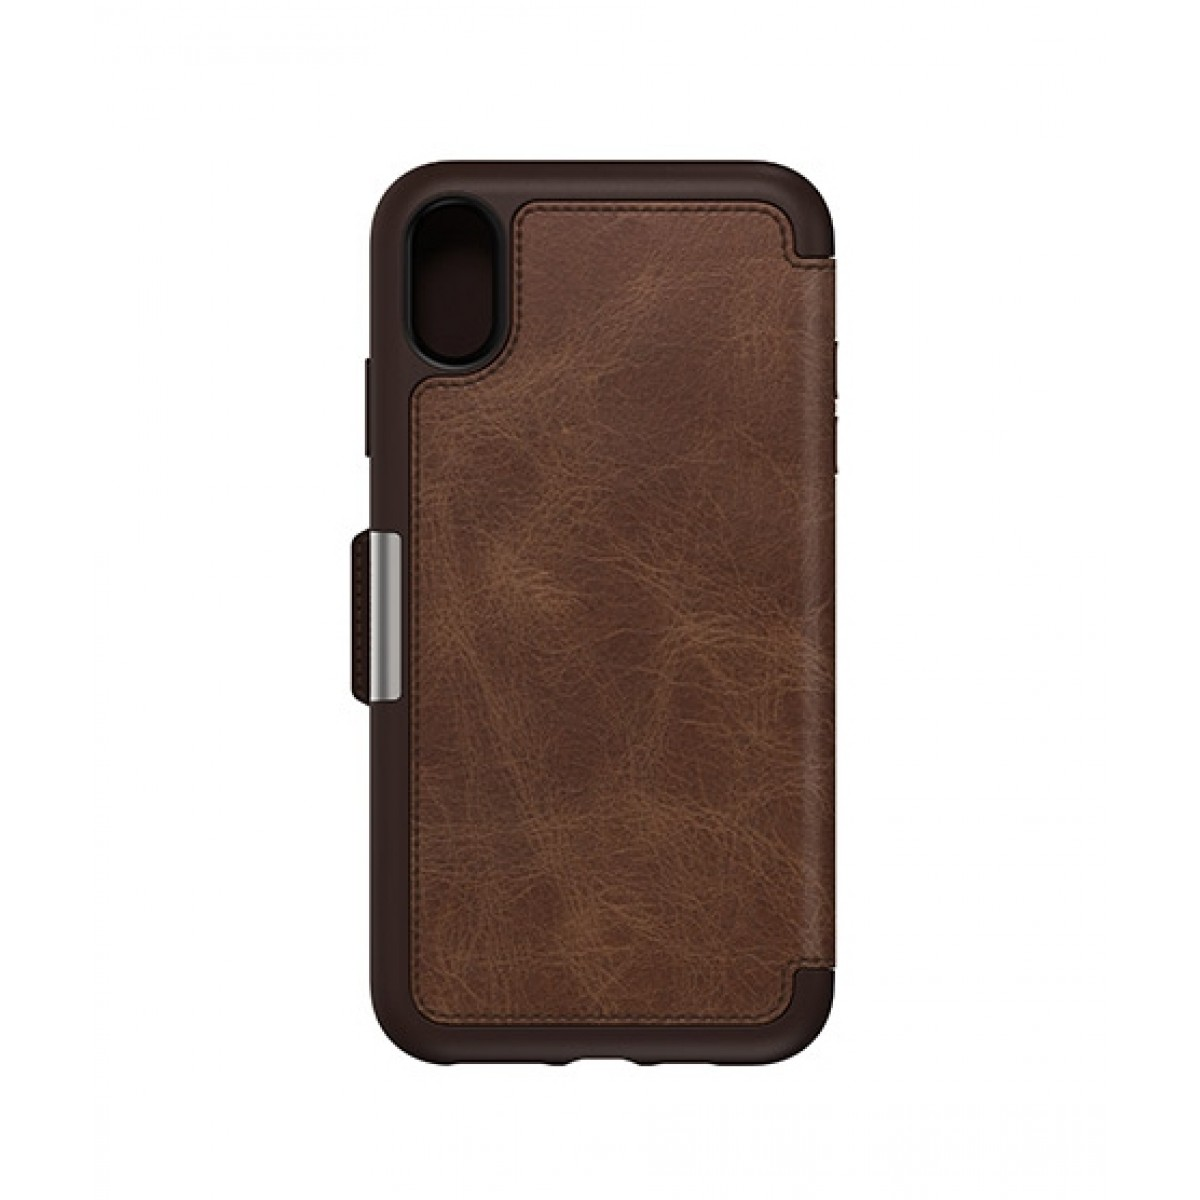 new concept dfe29 03baf OtterBox Strada Series Folio Espresso Case For iPhone XS Max